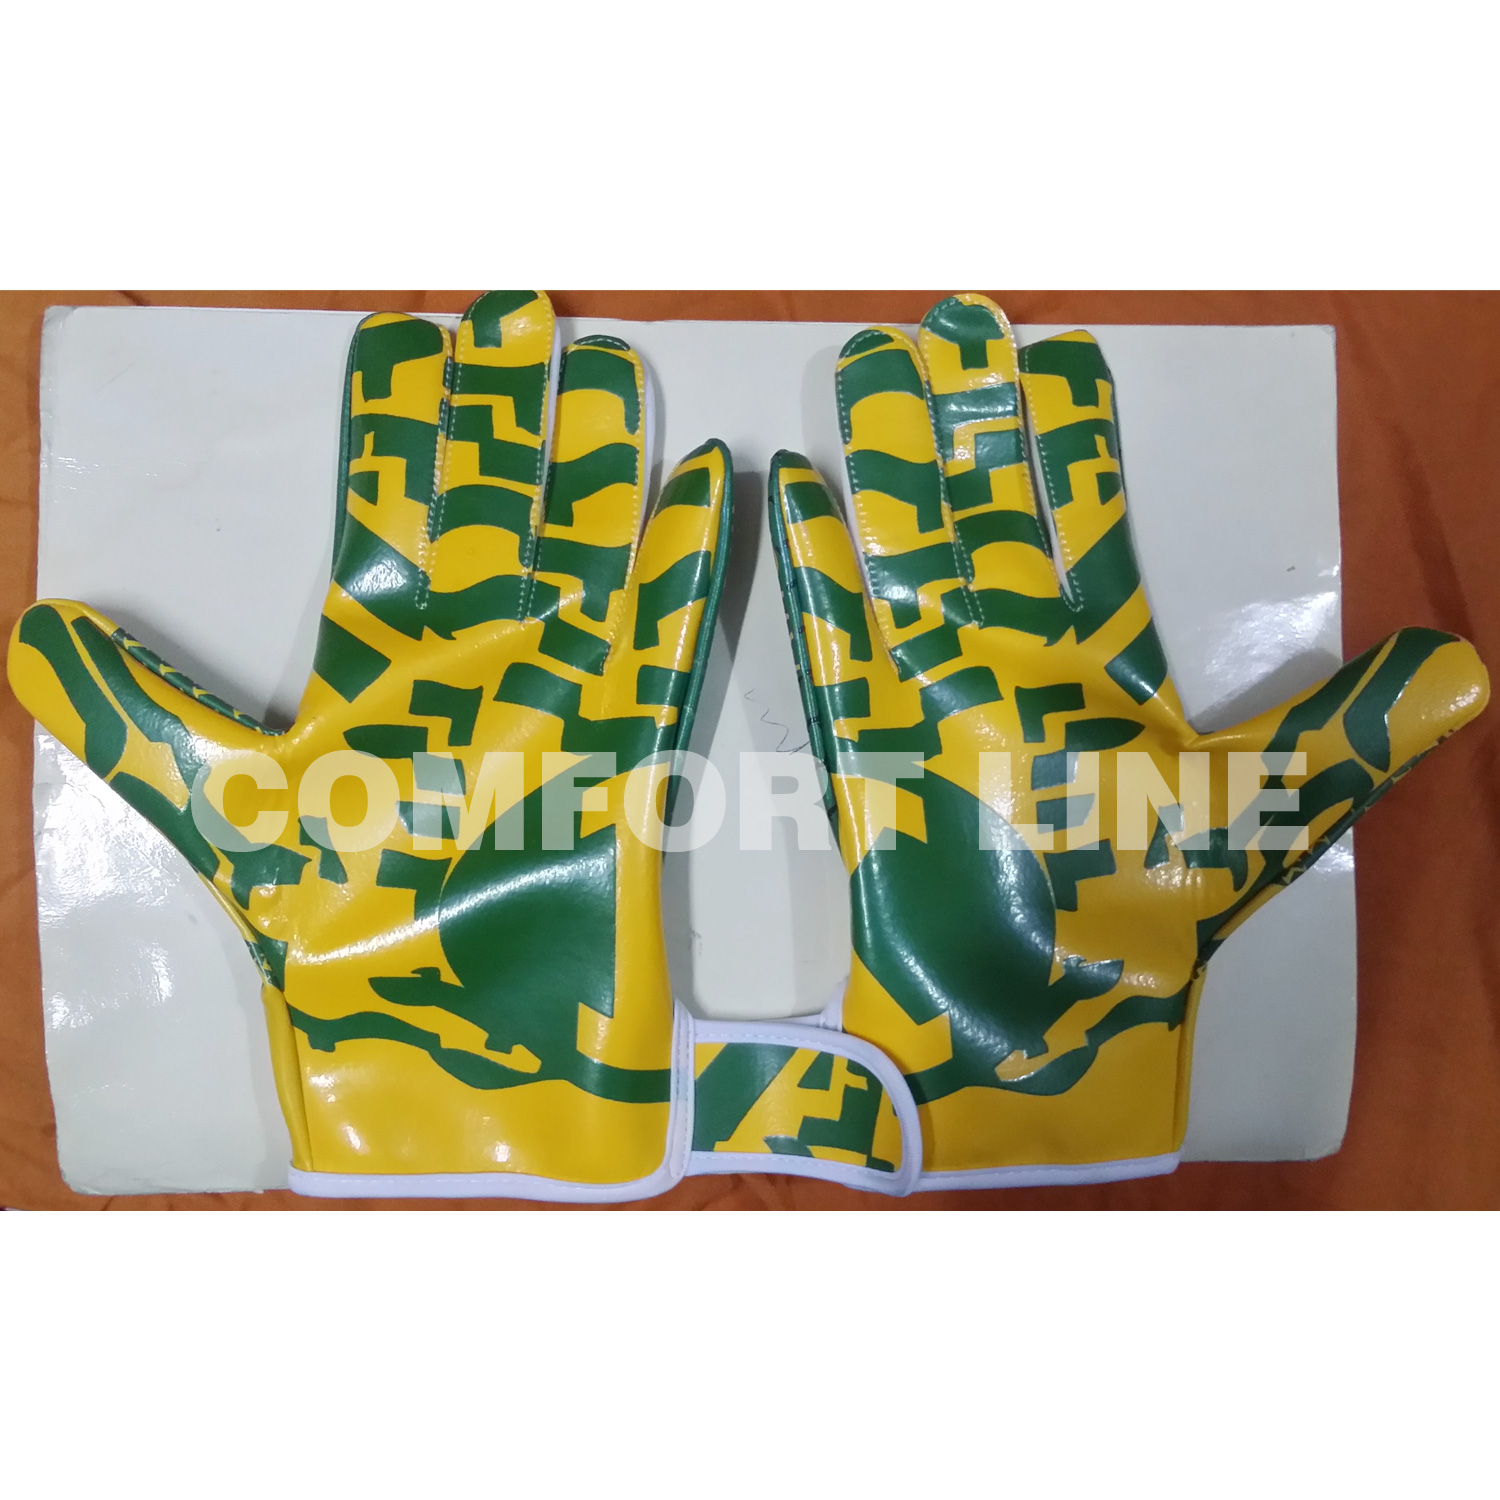 American Football Gloves